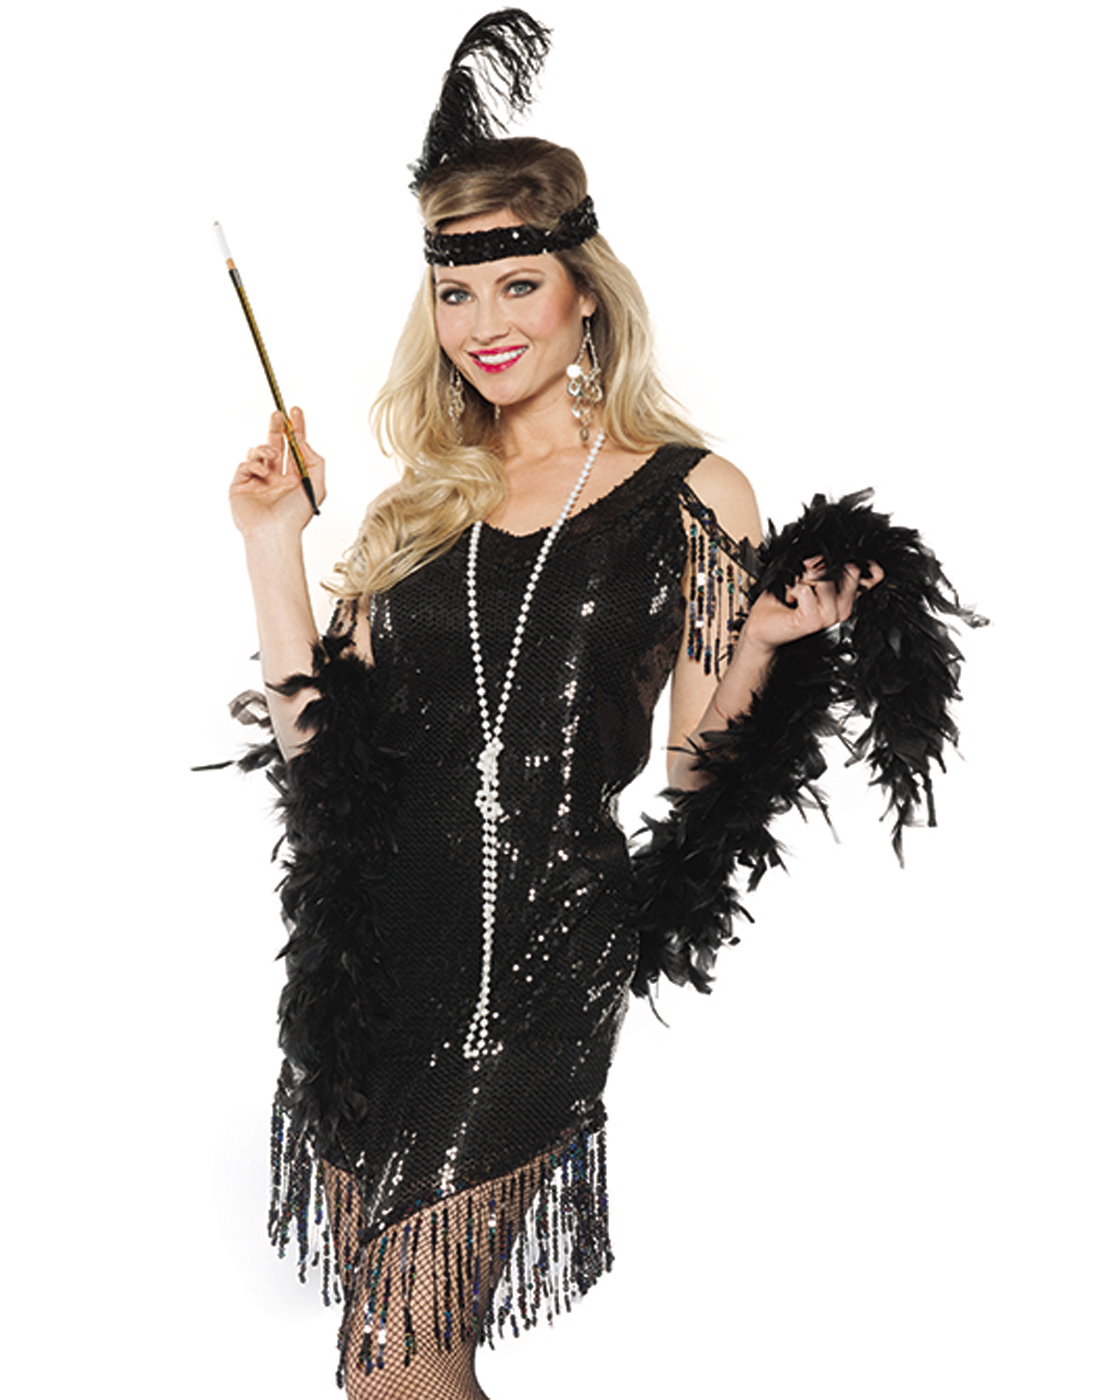 Black Sequined Swinging Flapper Dress 20u0027s The Great Gatsby Halloween Costume  sc 1 st  Walmart & Black Sequined Swinging Flapper Dress 20u0027s The Great Gatsby ...